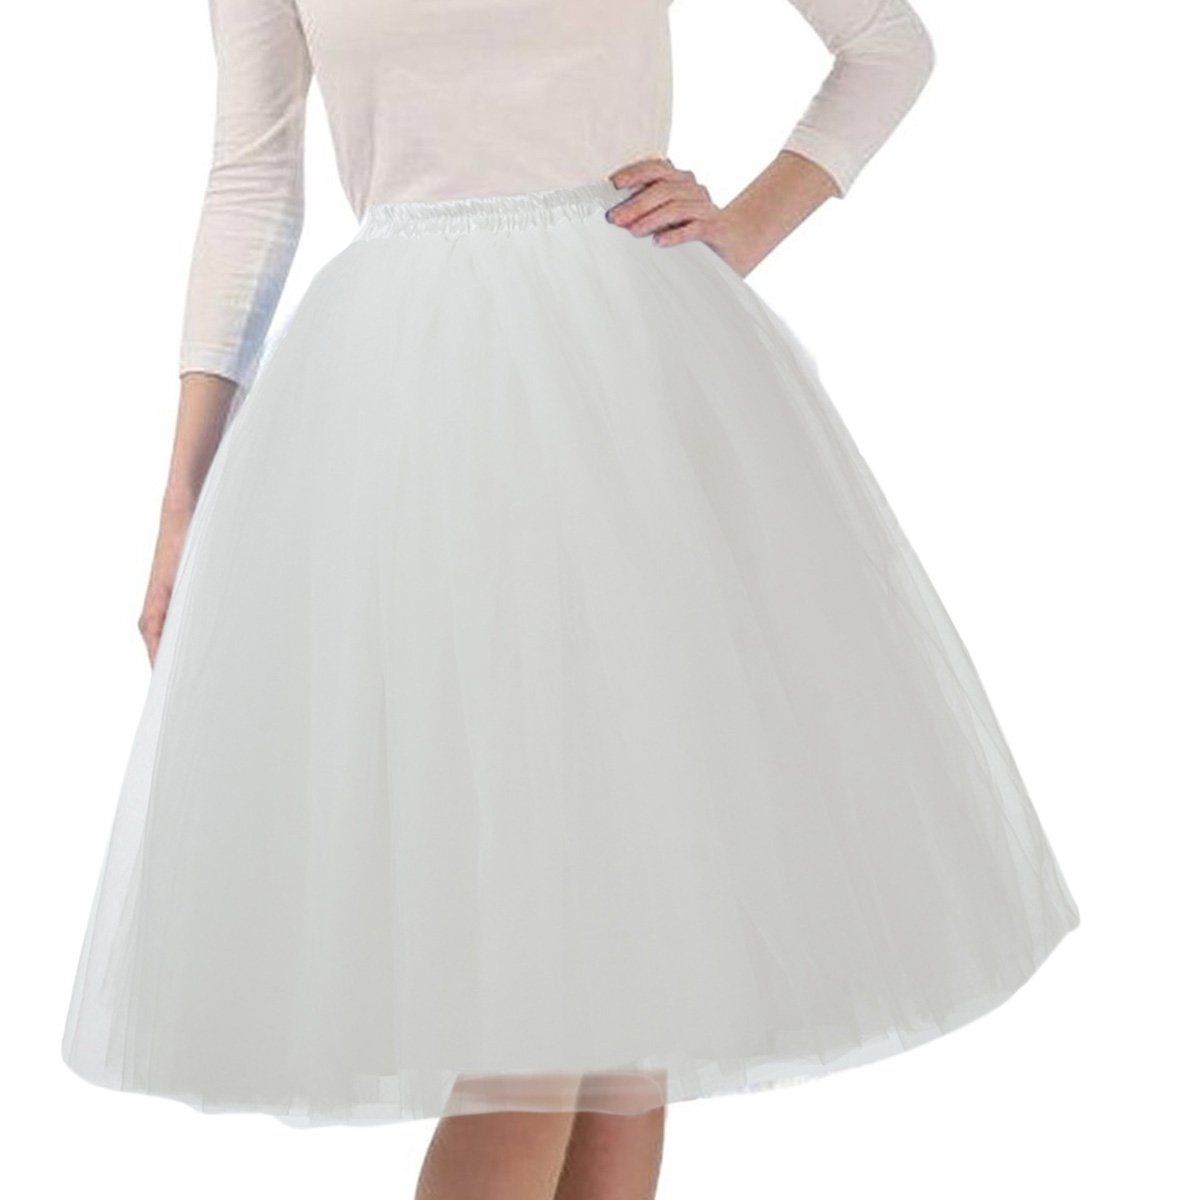 Quesera Women's Layered Tutu A Line Knee Length Elastic Waistband Puffy Tulle Skirt,White,Free size fit in 2-12